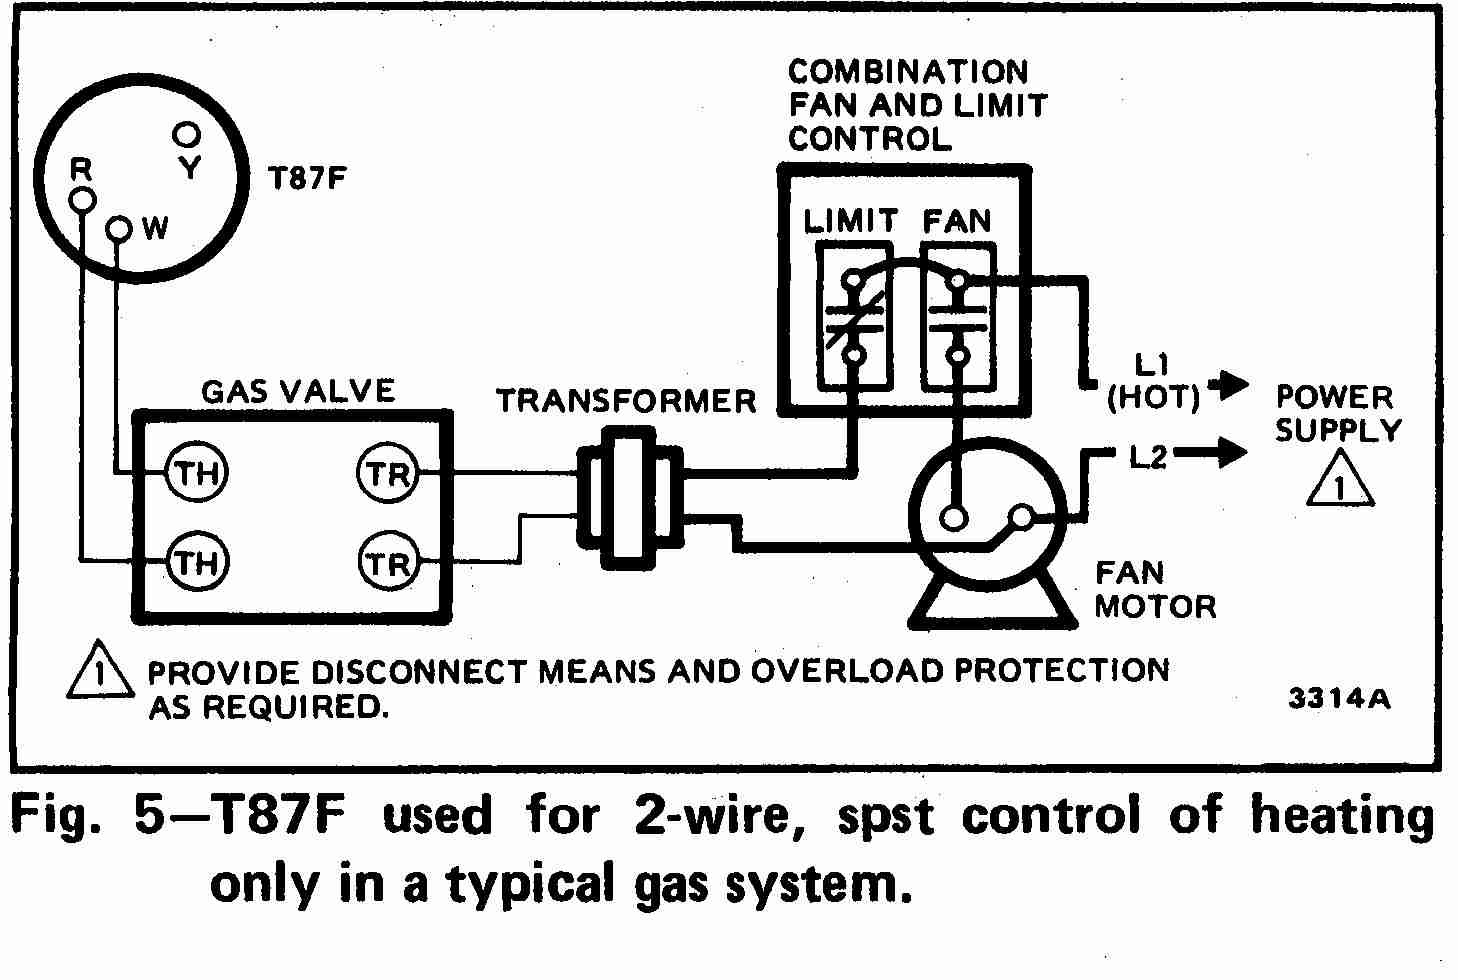 Three Way Switch Wiring Symbol further View All furthermore Why Isnt This 3 Way Wiring Working furthermore Wiring Diagram For 4 Gang Light Switch in addition 3 Way Switch. on wiring diagram for a three way light switch